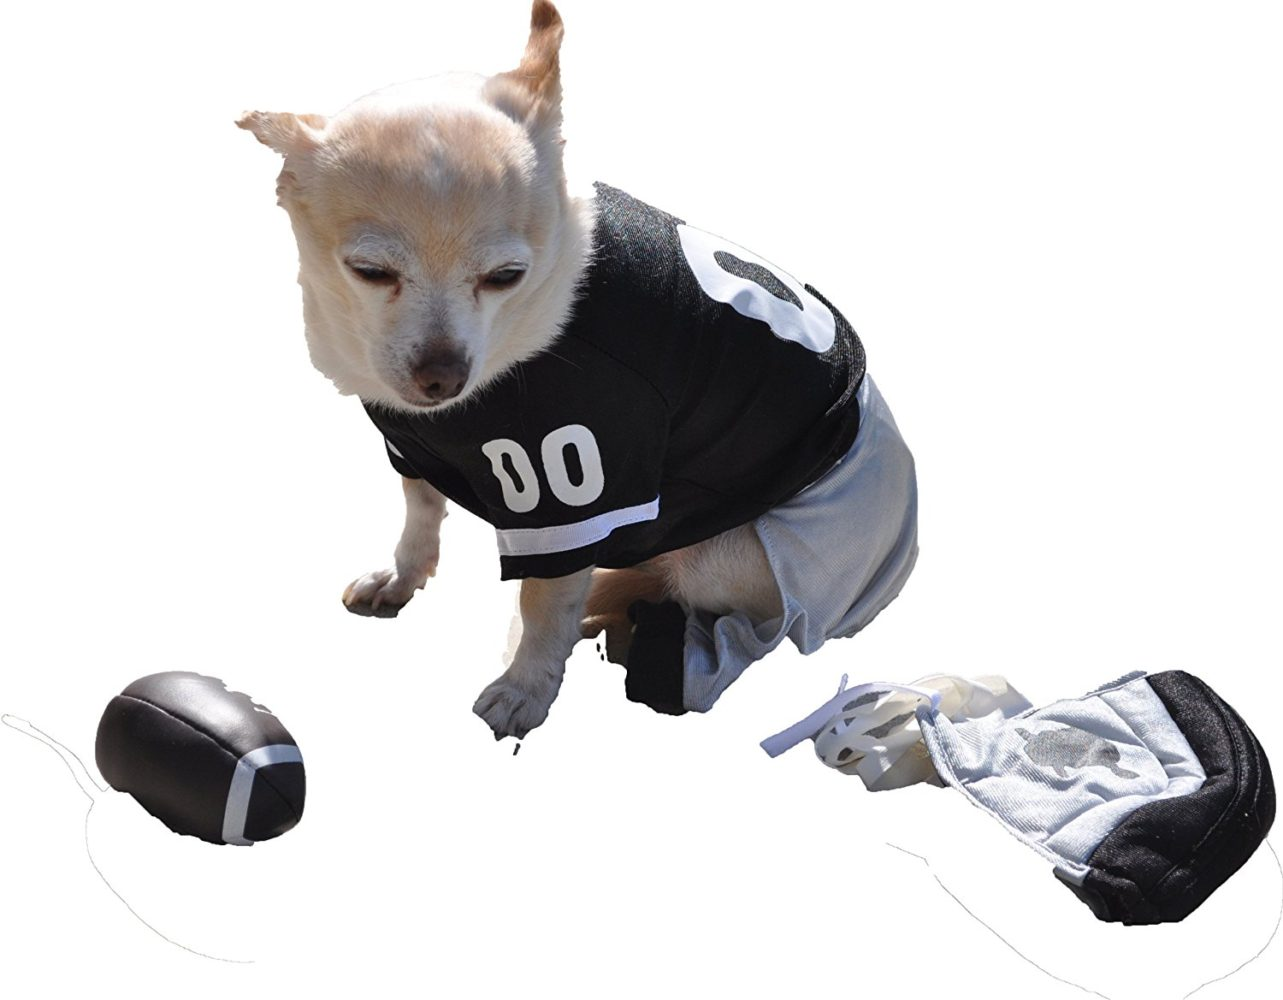 Dog Gone Cute by Louu0027s Doggie Boutique 4 Piece Football Costume (Jersey Pants Helmet and Toy Ball)-Extra Small (XS)  sc 1 st  Chihuahua Kingdom & Dog Gone Cute by Louu0027s Doggie Boutique 4 Piece Football Costume